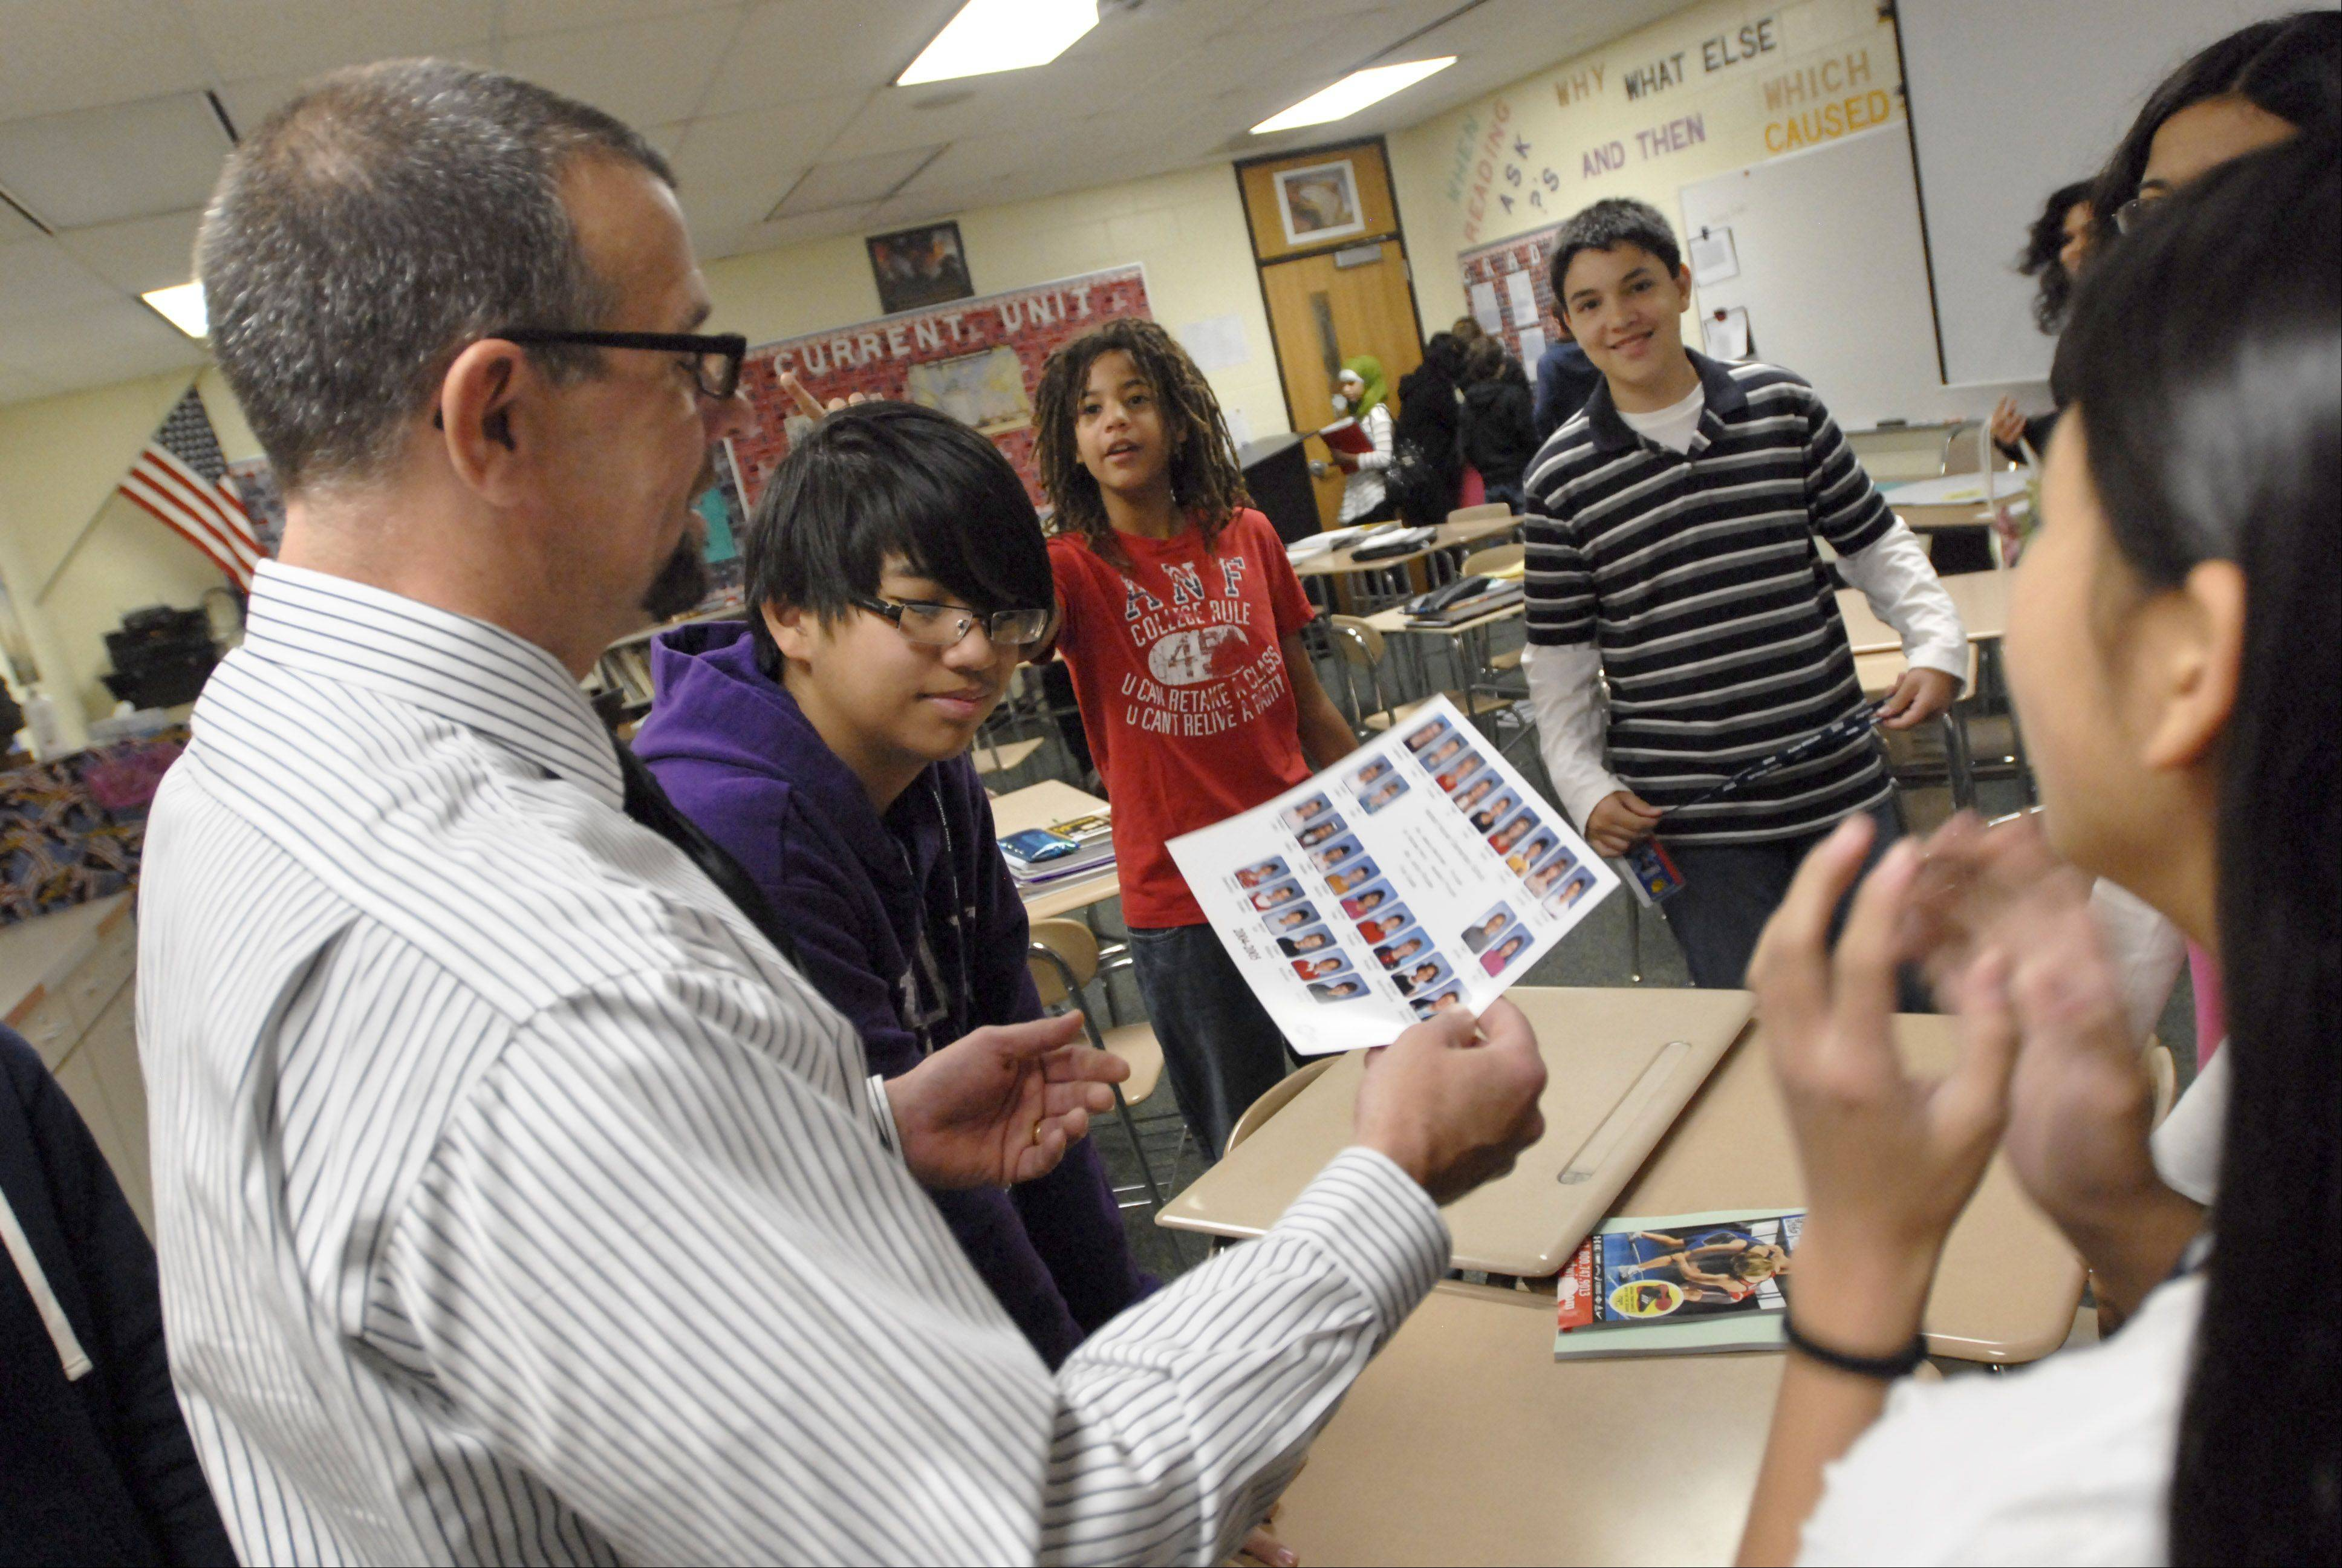 Teacher Mark Shydlowski looks at an old class photo with students in their homeroom at Helen Keller School in Schaumburg. A new 20-minute homeroom period helps teachers identify students who have problems with tardiness or behavior, which may affect test scores.